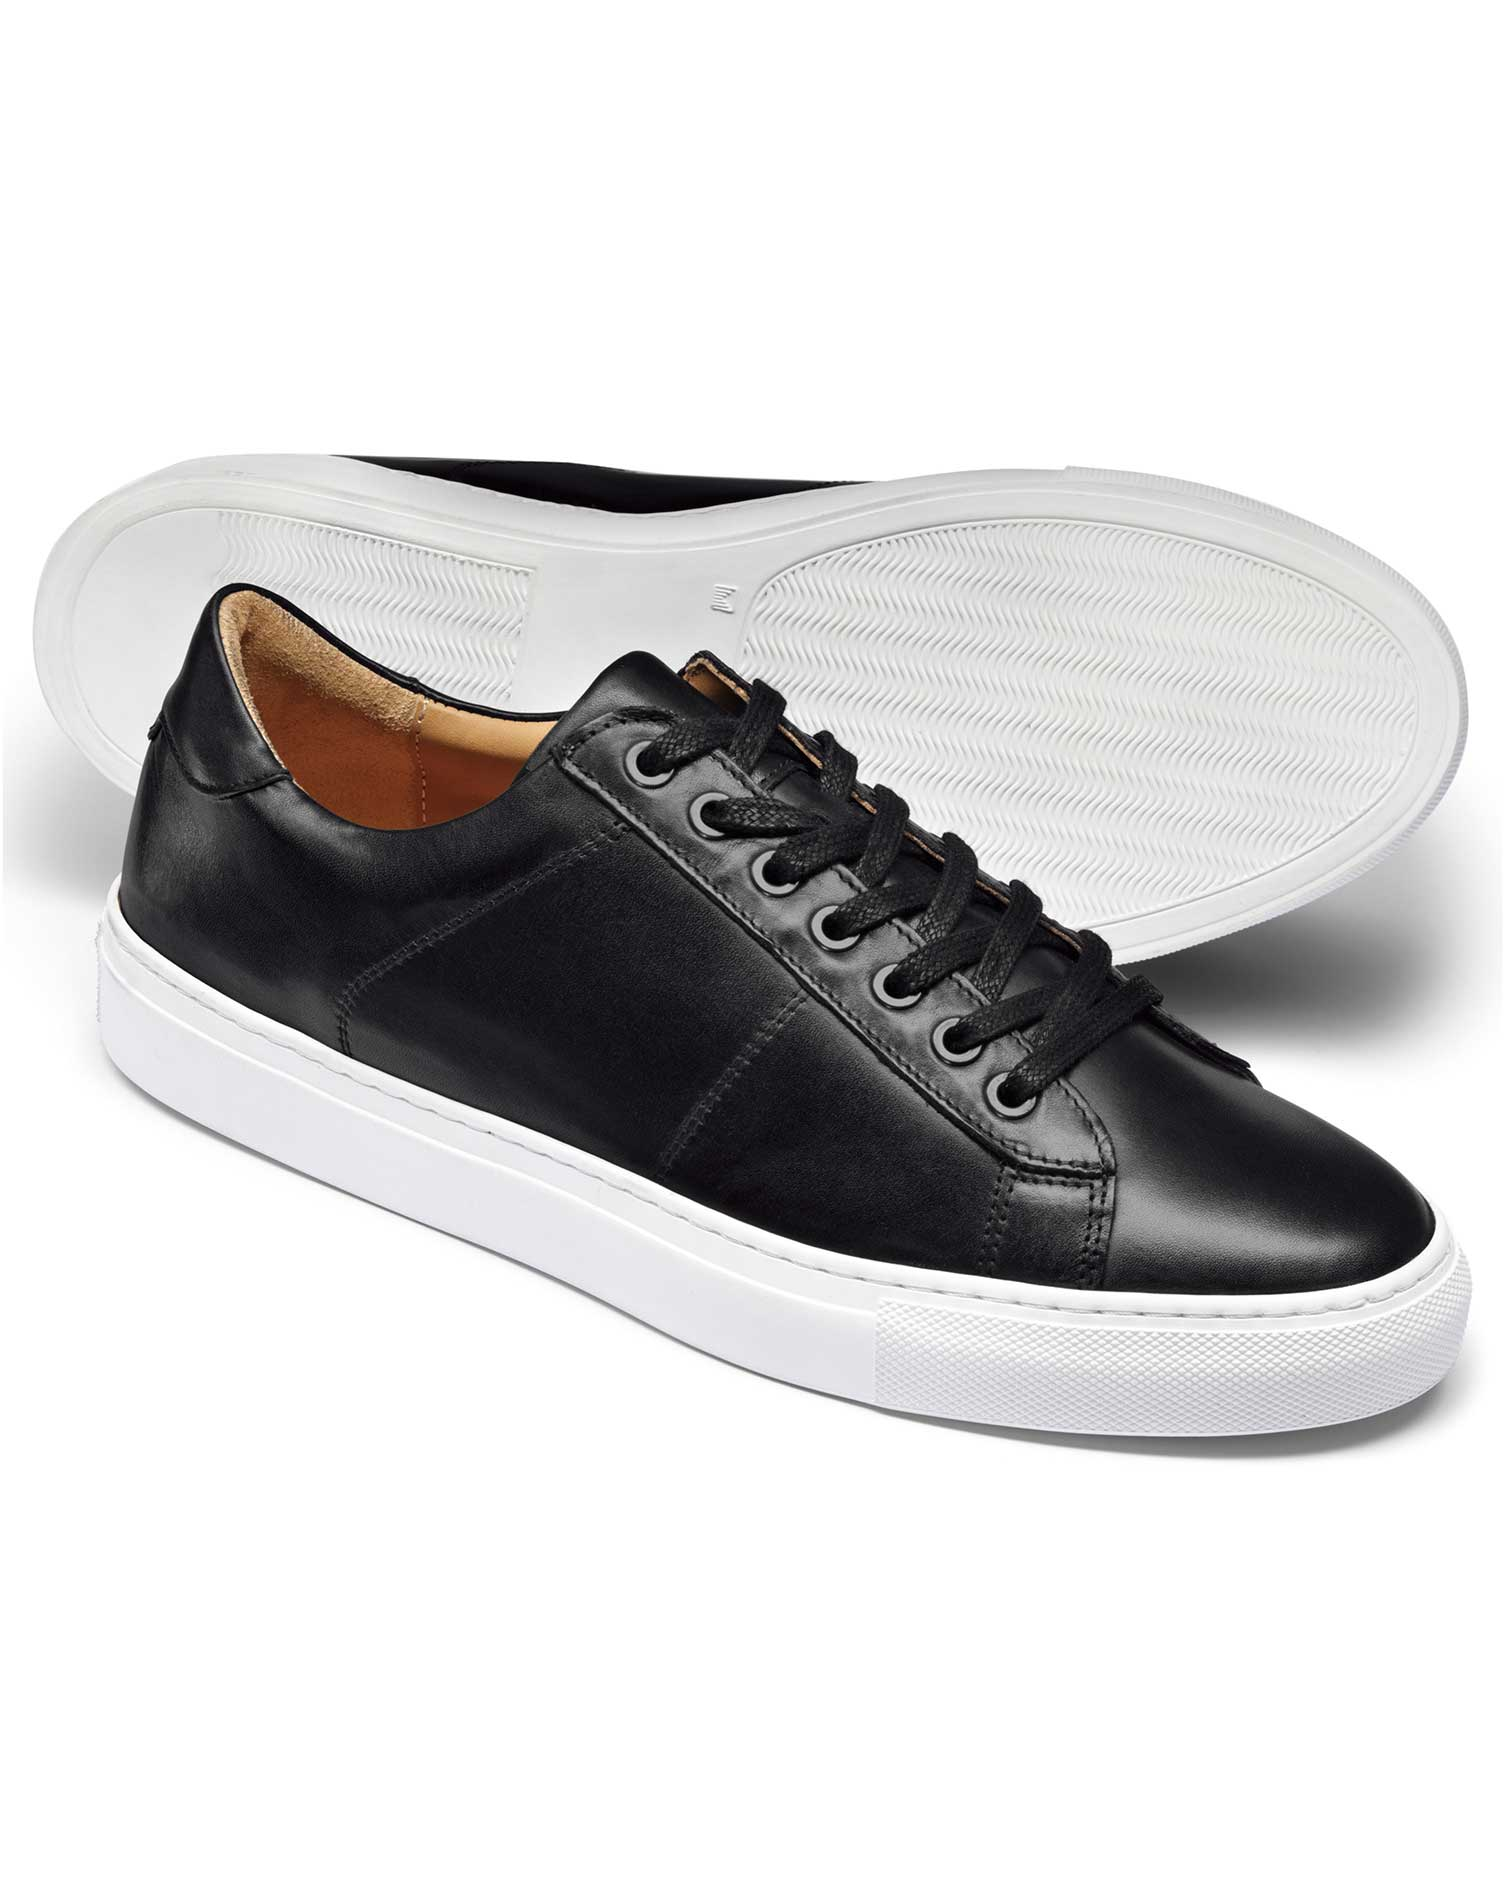 black leather sneakers size 13 by charles tyrwhitt